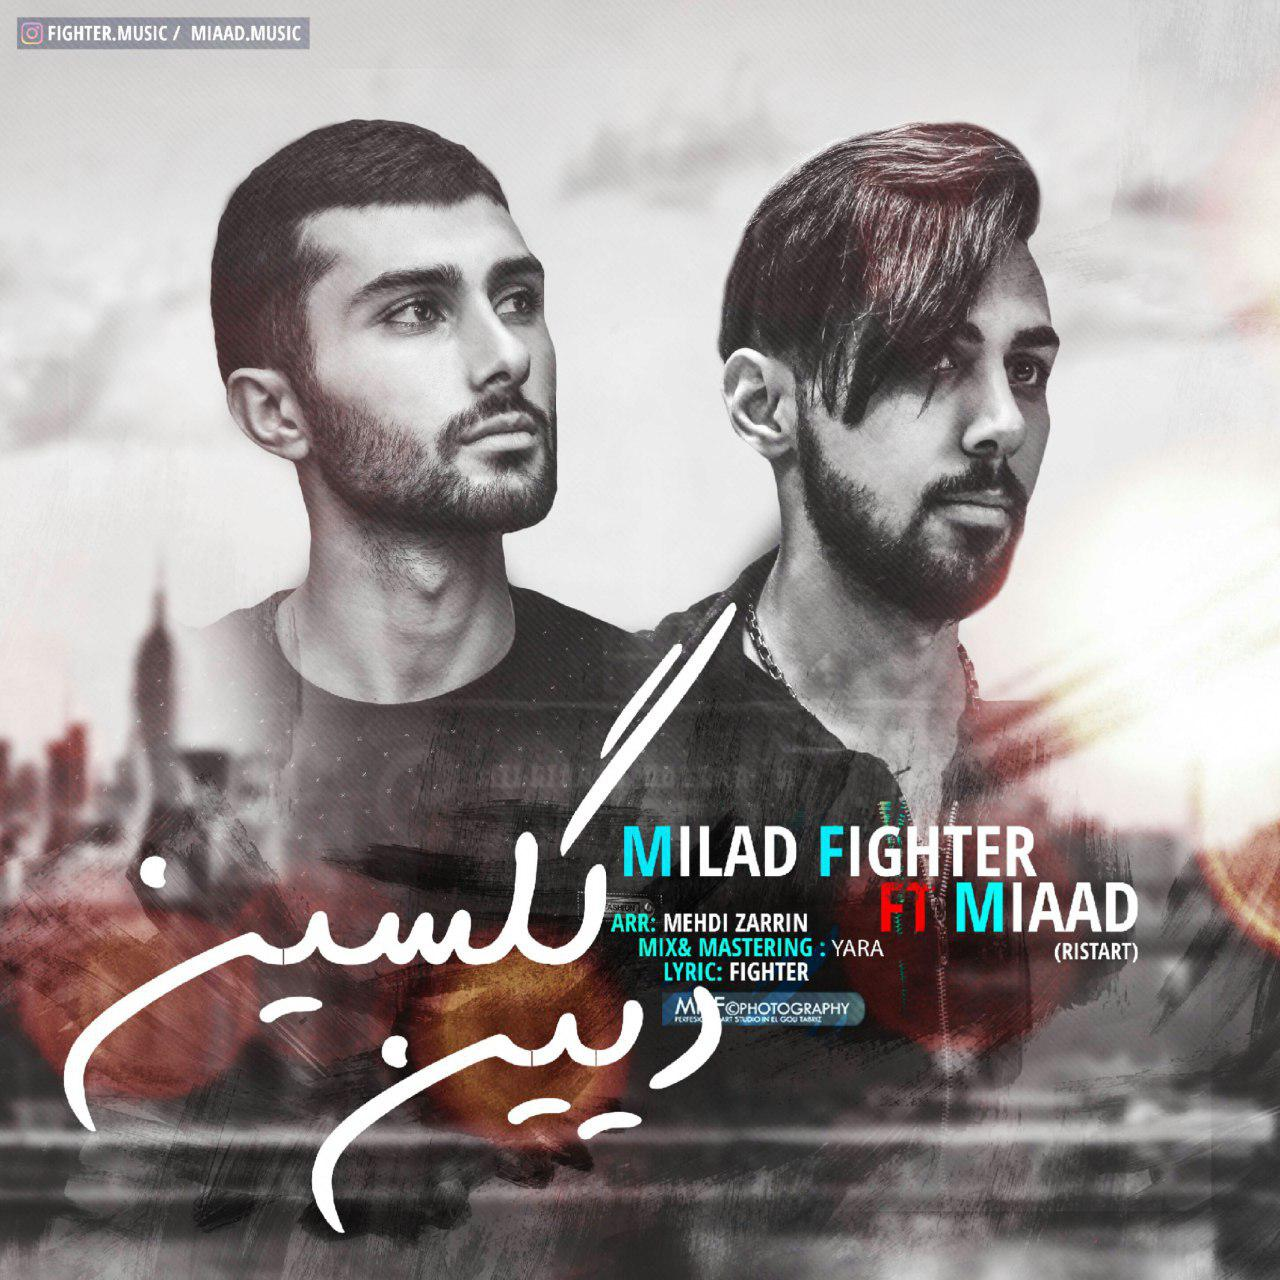 http://s8.picofile.com/file/8323625668/41Milad_Fighter_Ft_Miaad_Diyin_Galsin.jpg